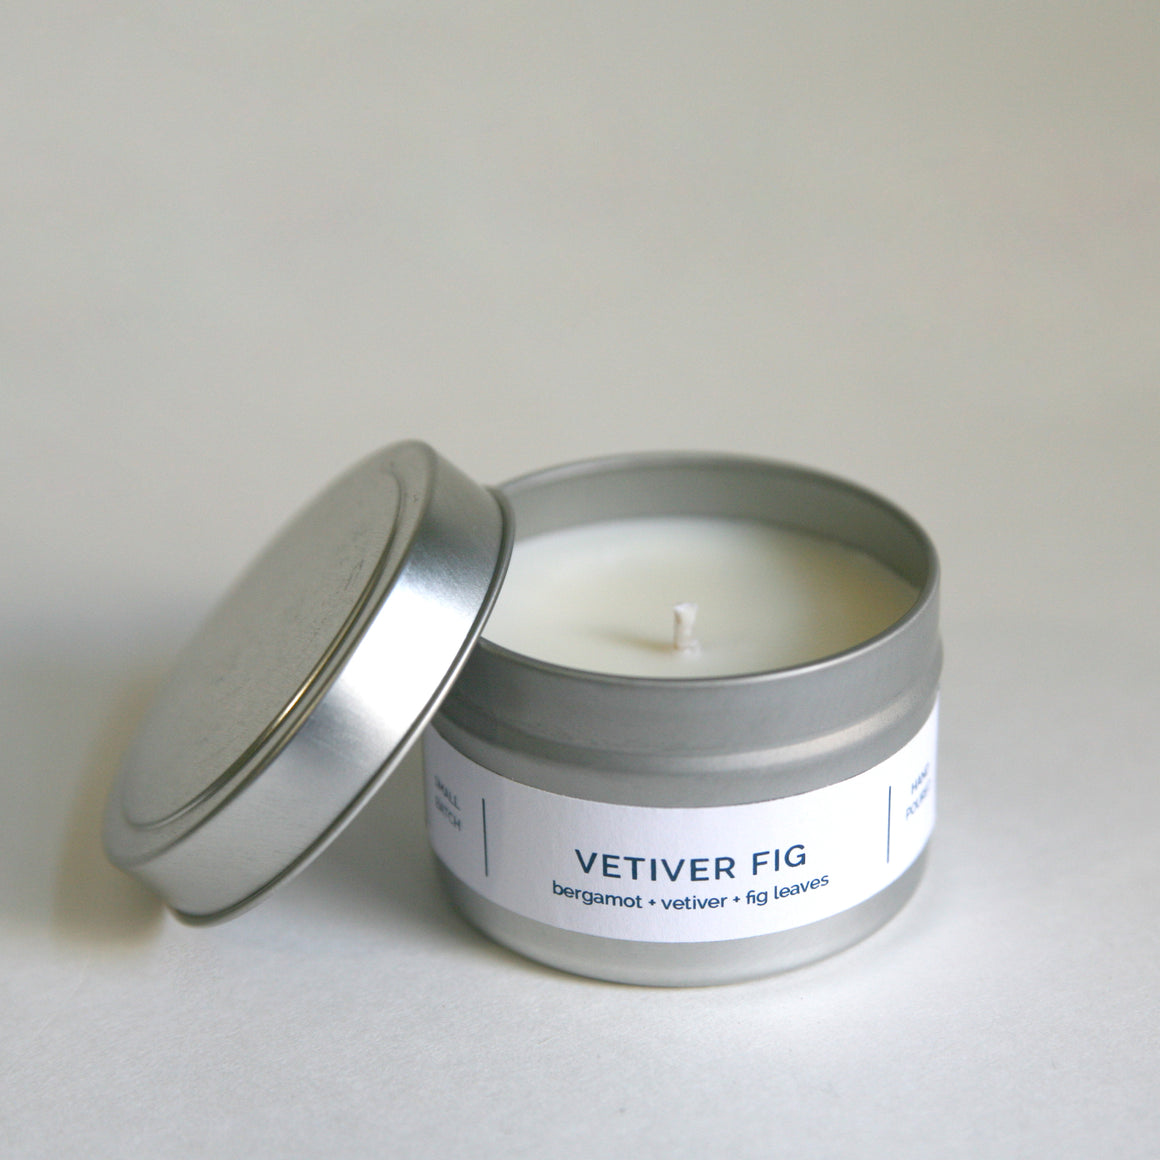 VETIVER FIG 4 oz Travel Tin Soy Candle